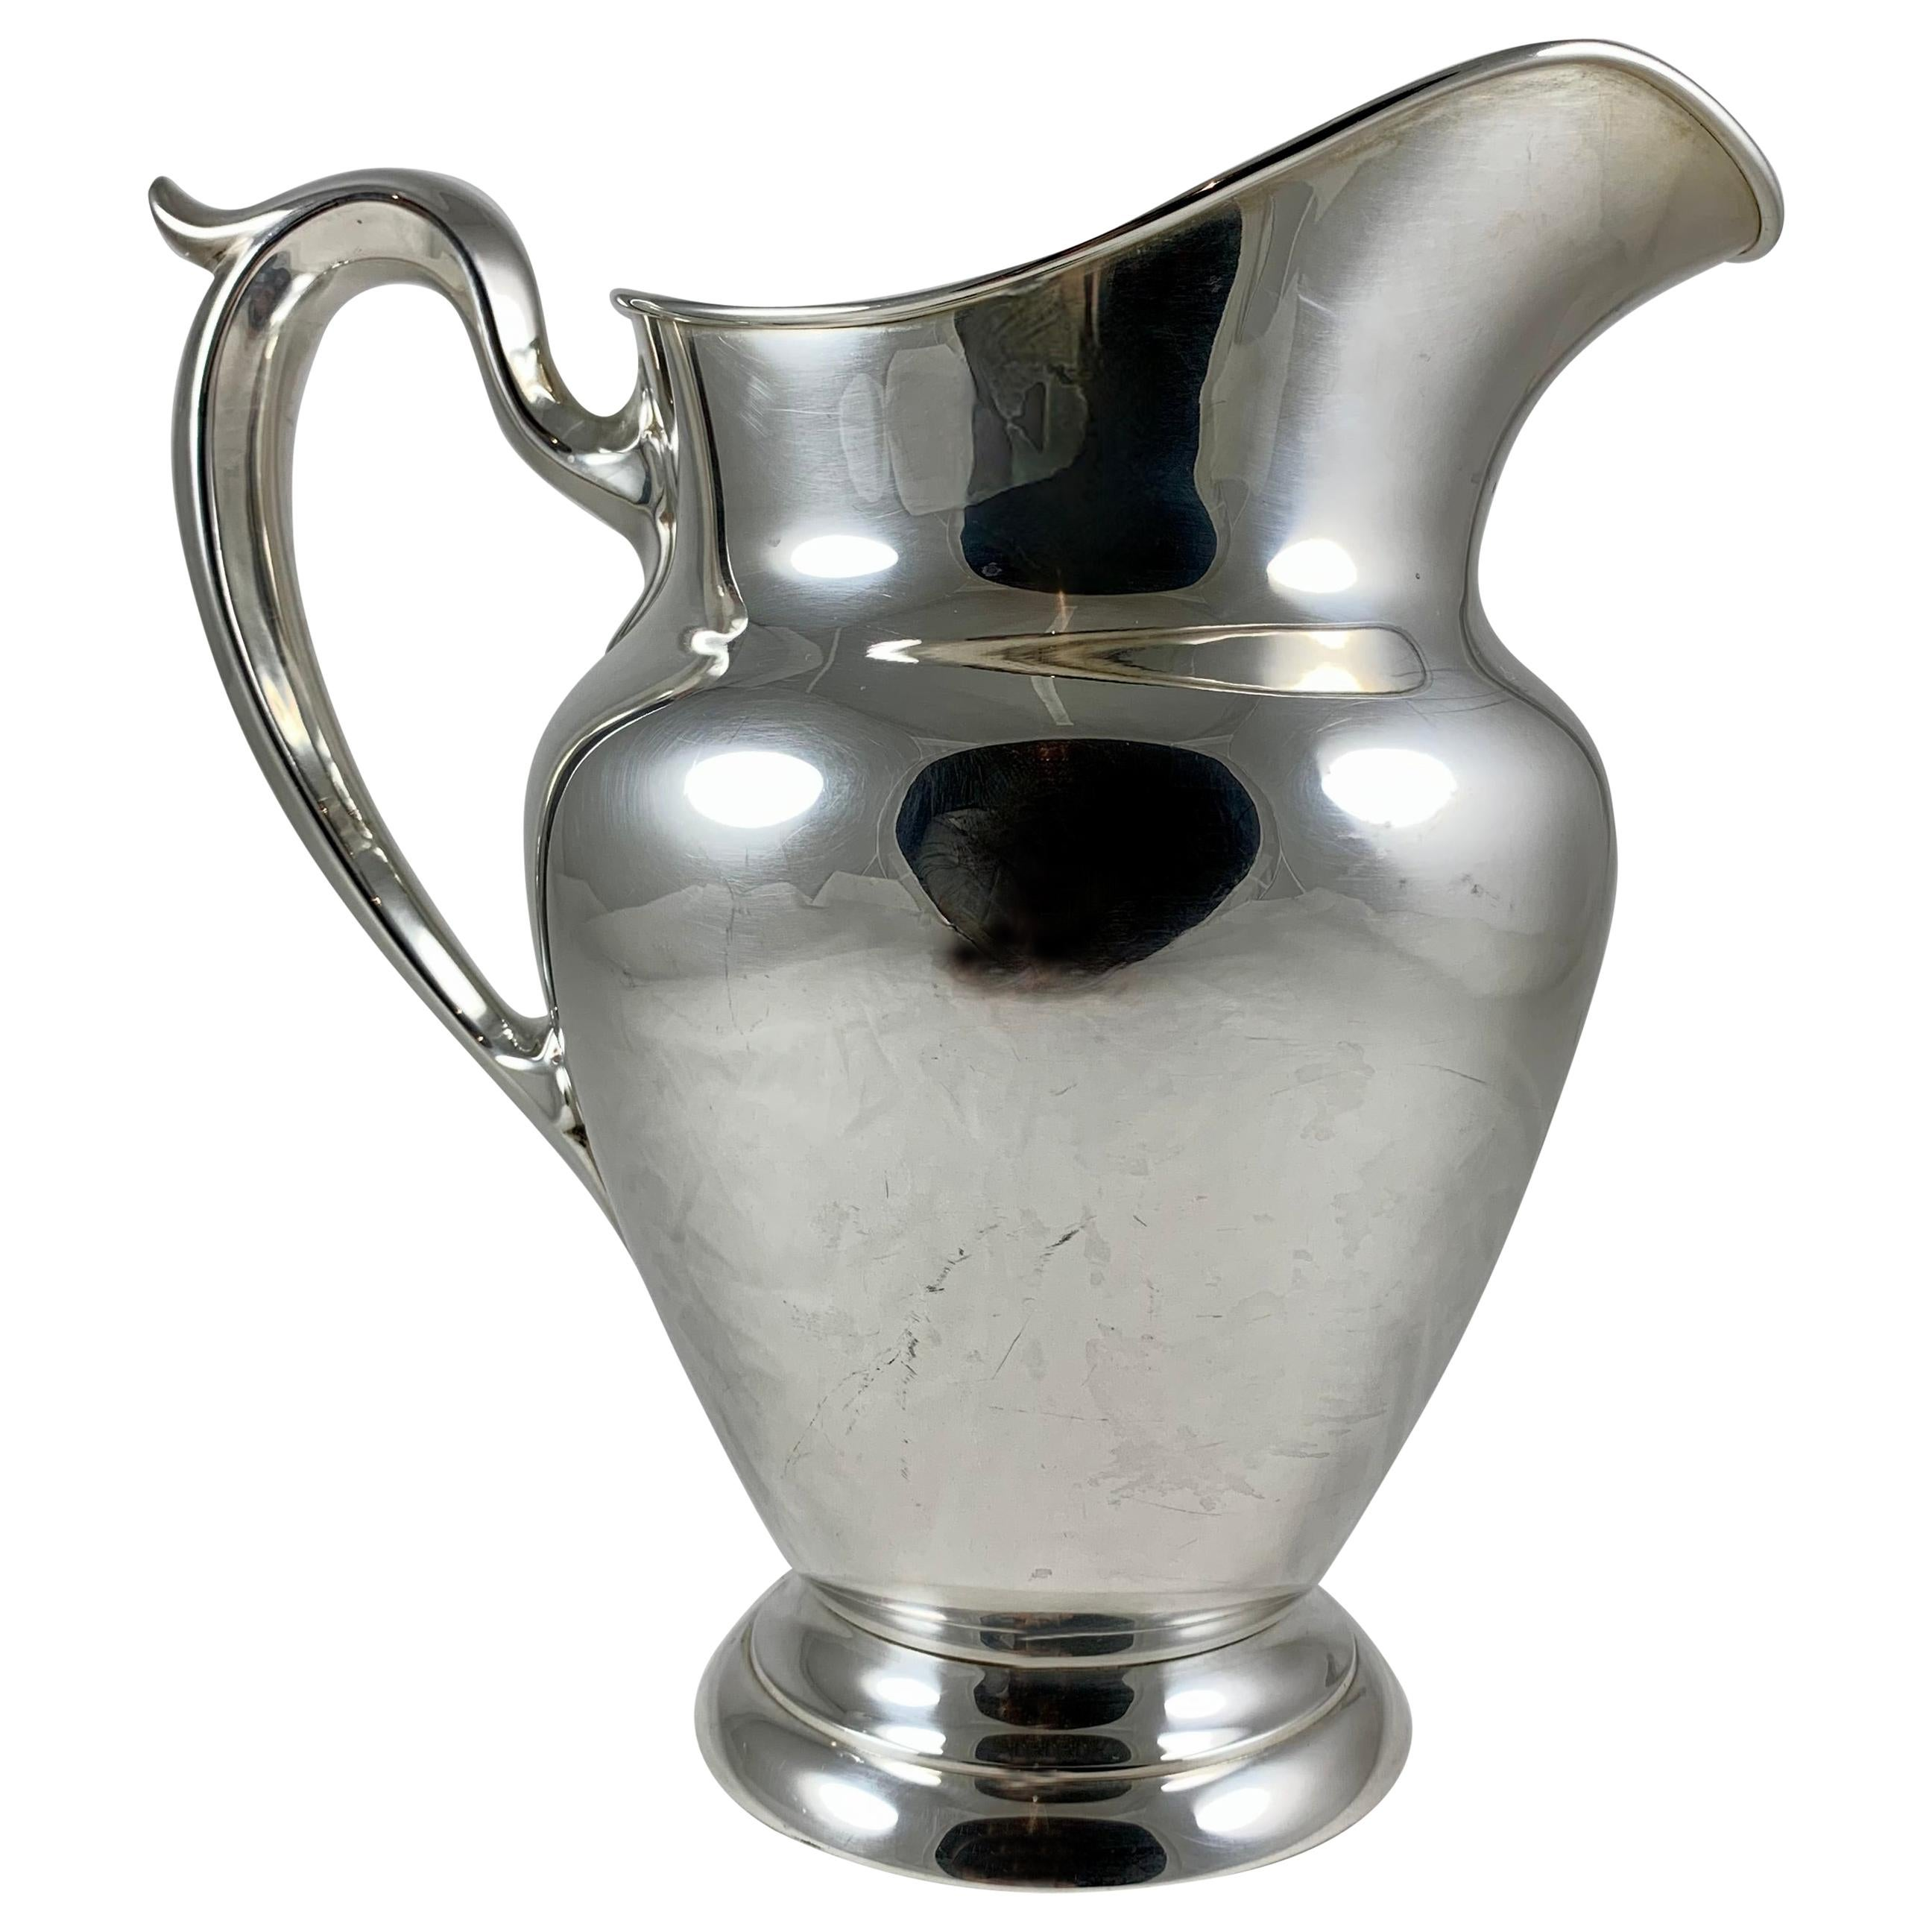 Gorham American Sterling Silver Large Water Pitcher, Dated 1948